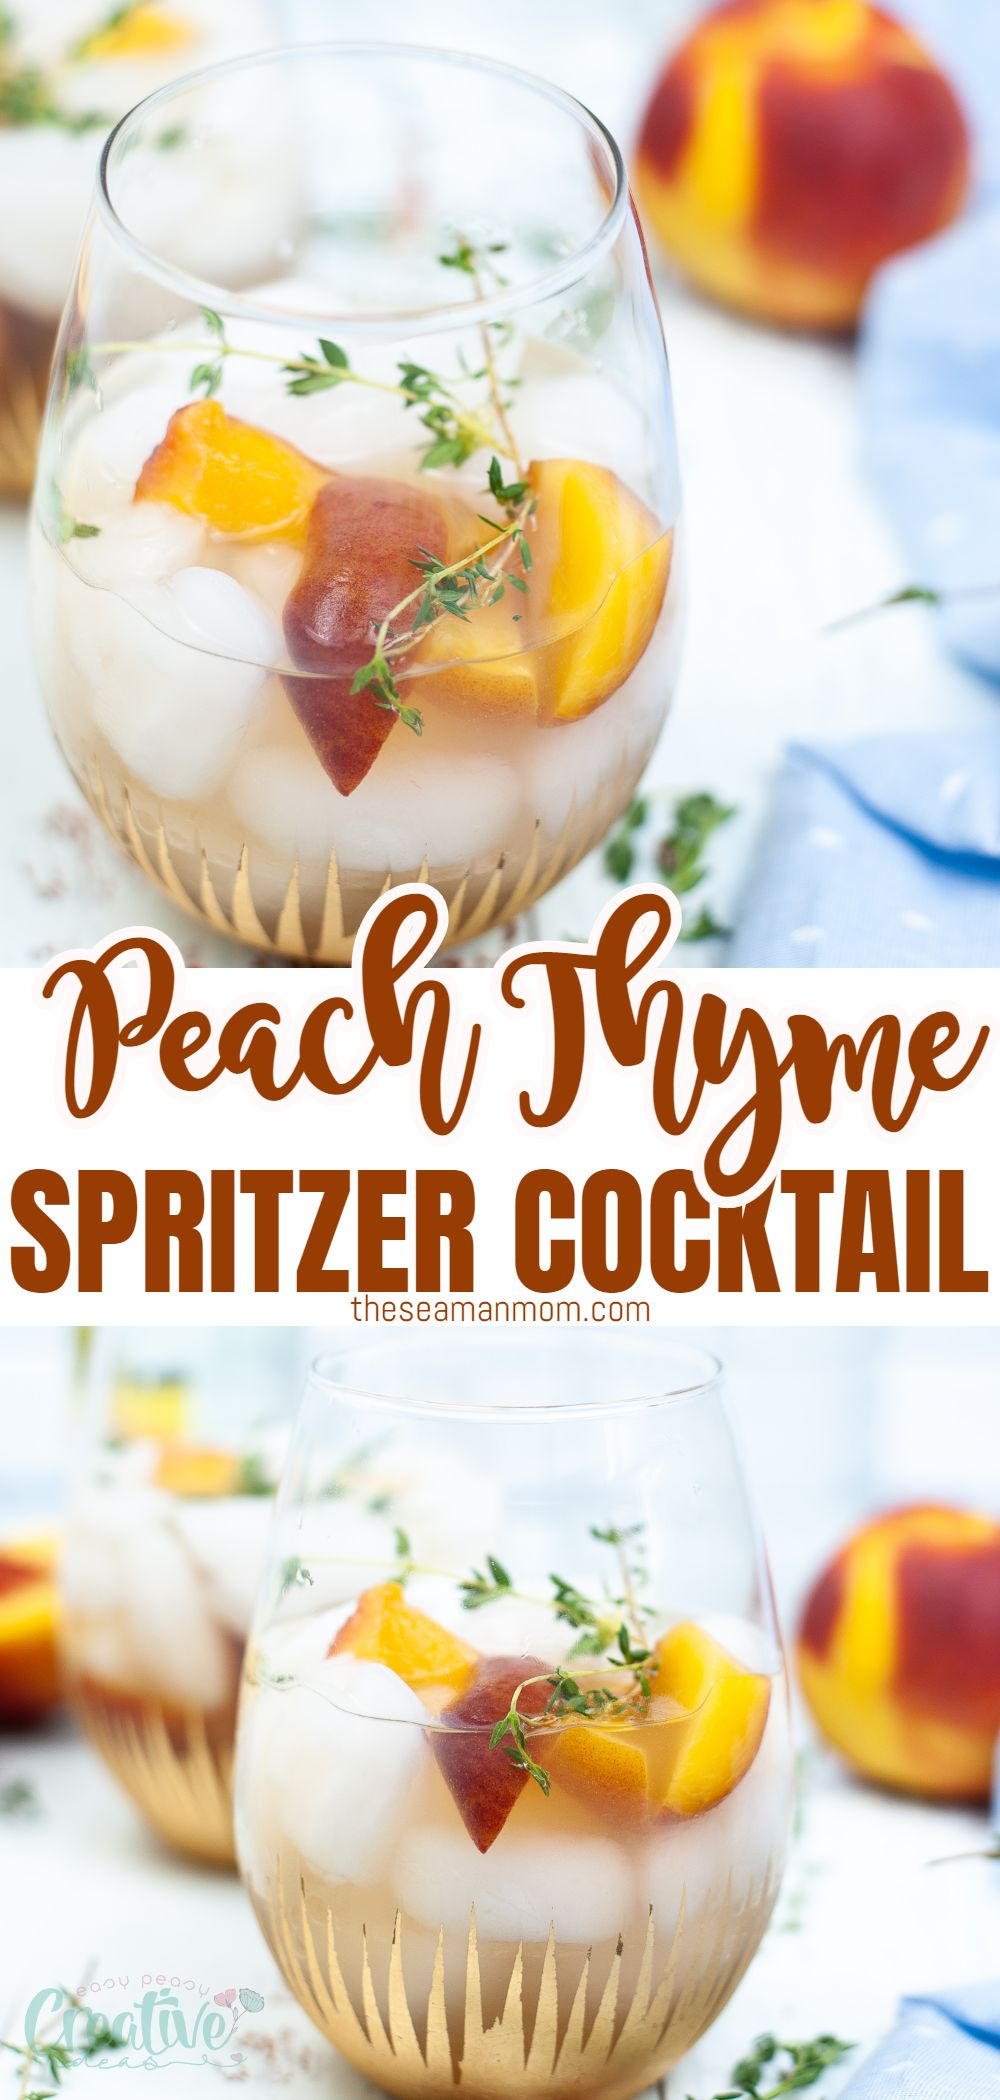 This peach cocktail has arrived just in time for peach & pool season! With an easy to make simple syrup, fresh peaches, thyme, and your favorite liquor this delicious peach gin cocktail will be one beverage you'll want to drink all summer long. via @petroneagu